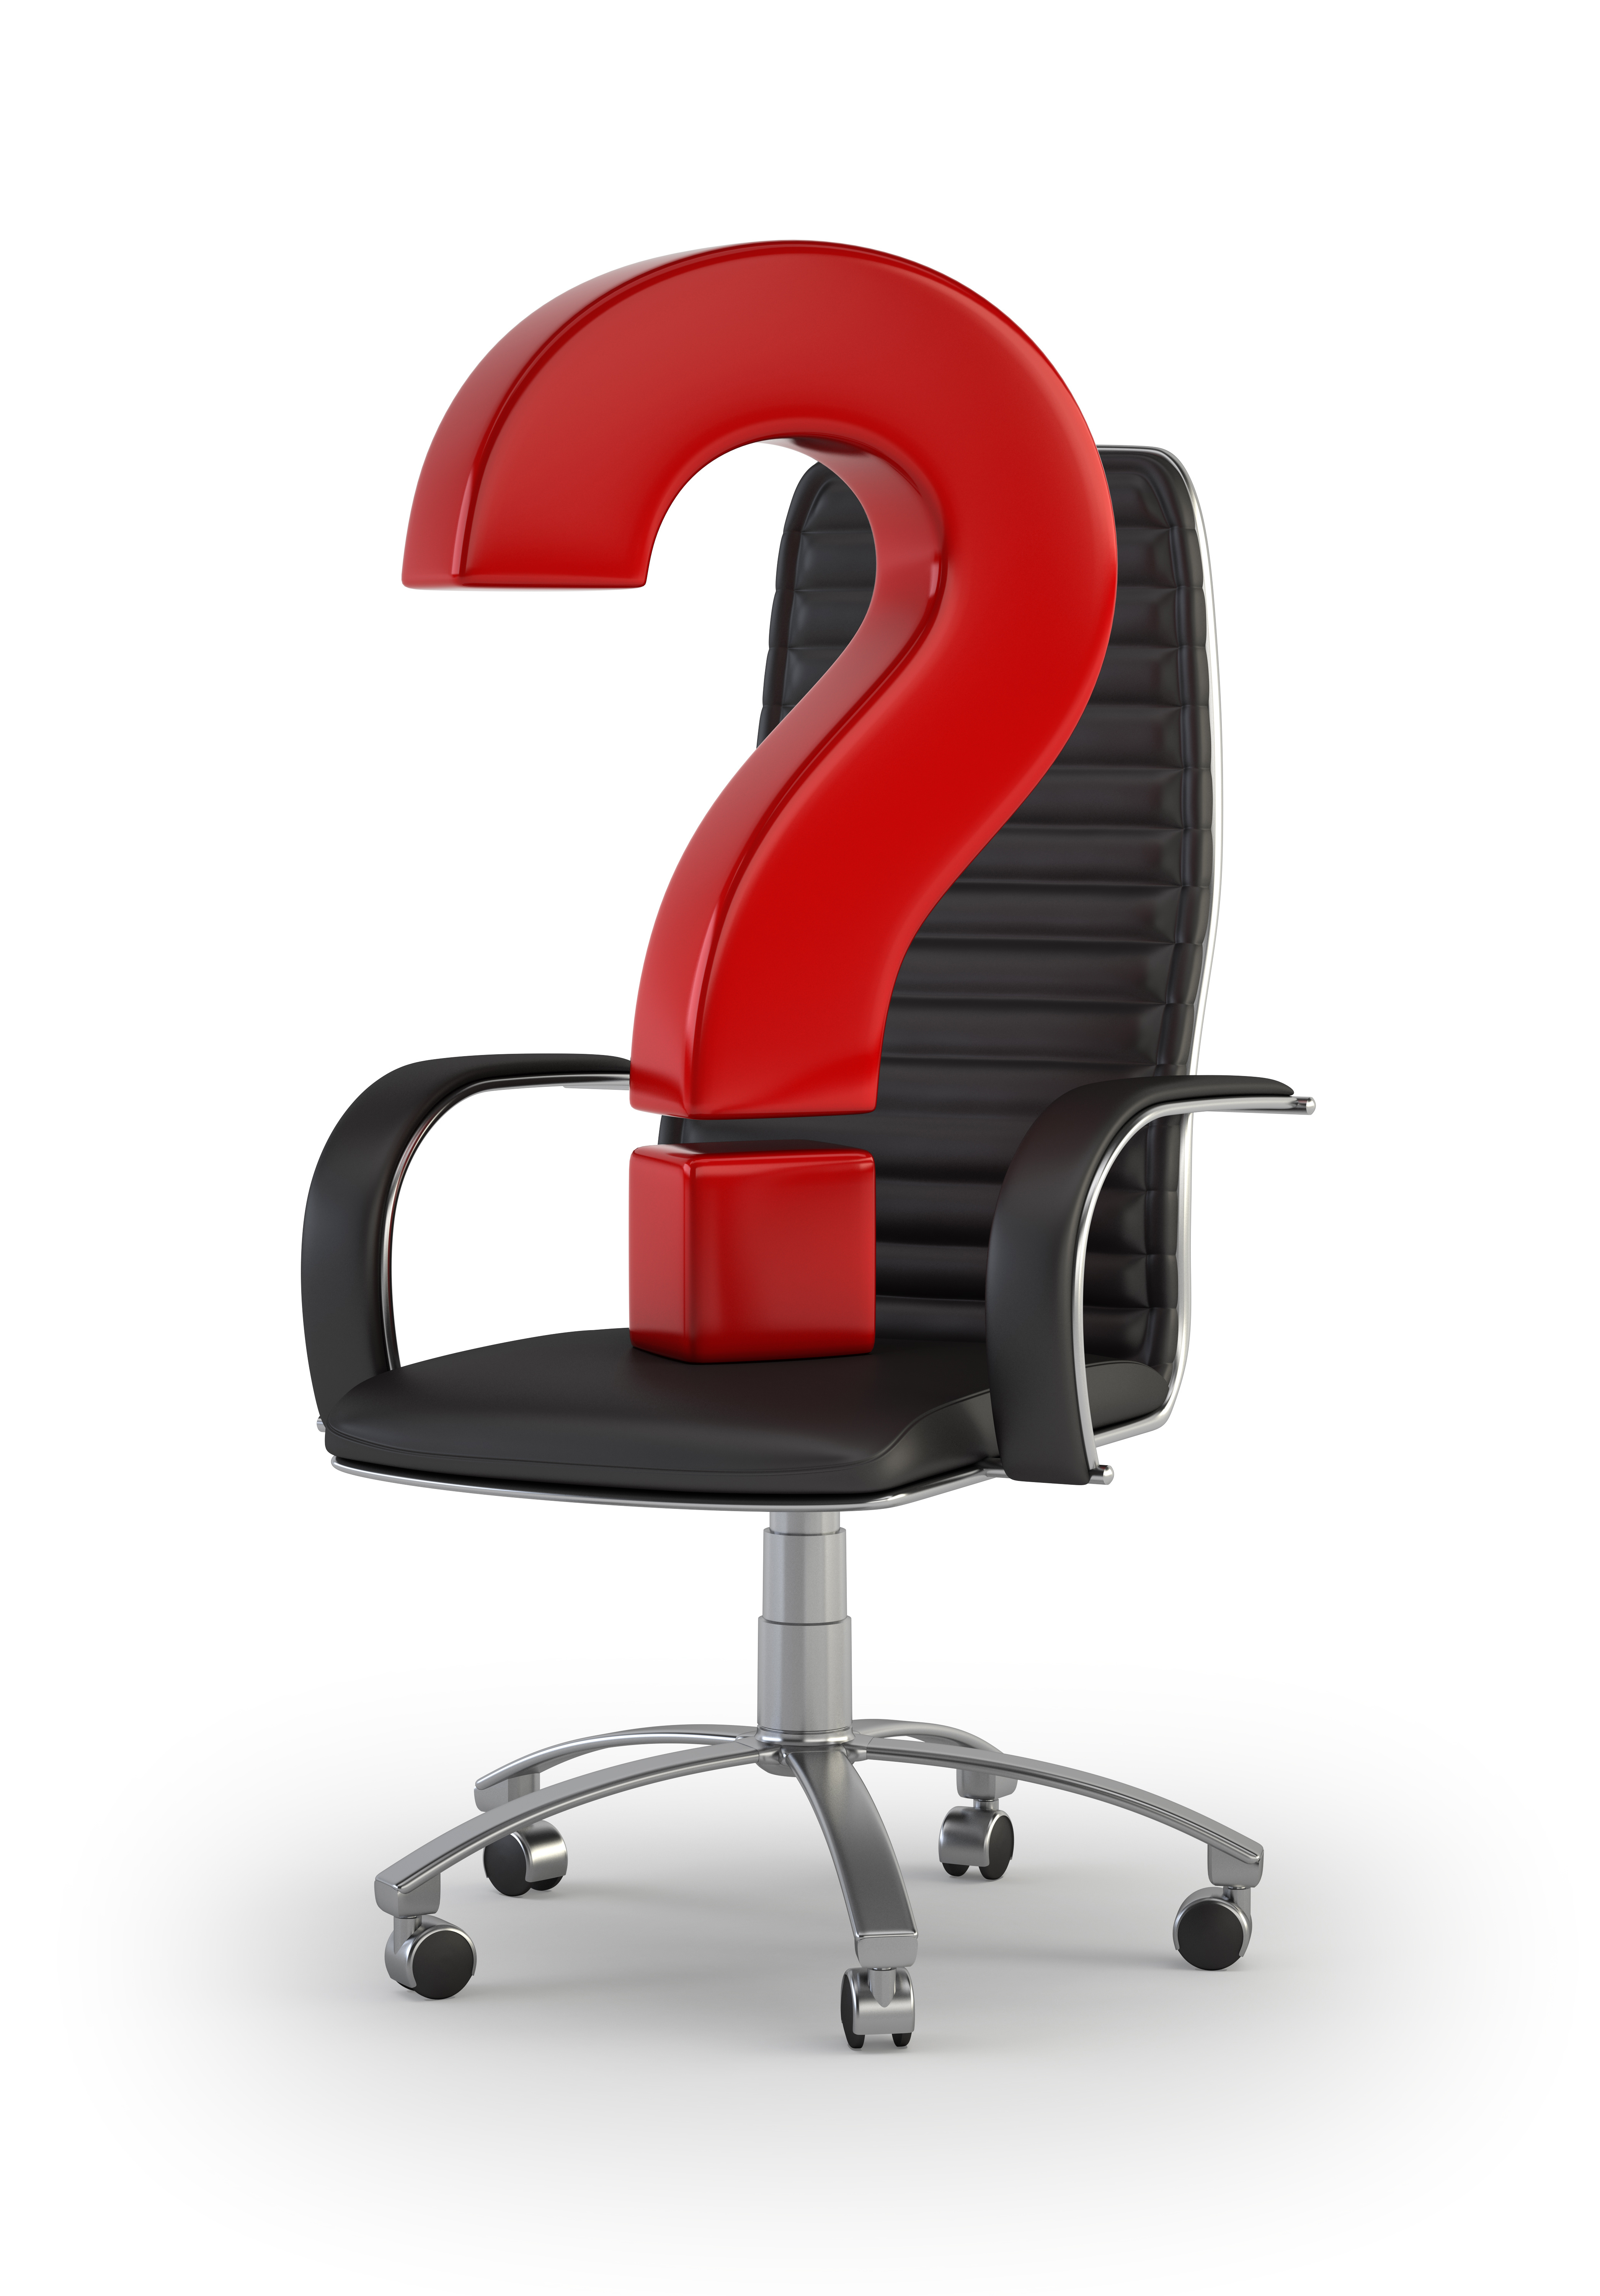 a question mark placed on an office chair asking who HR should report to